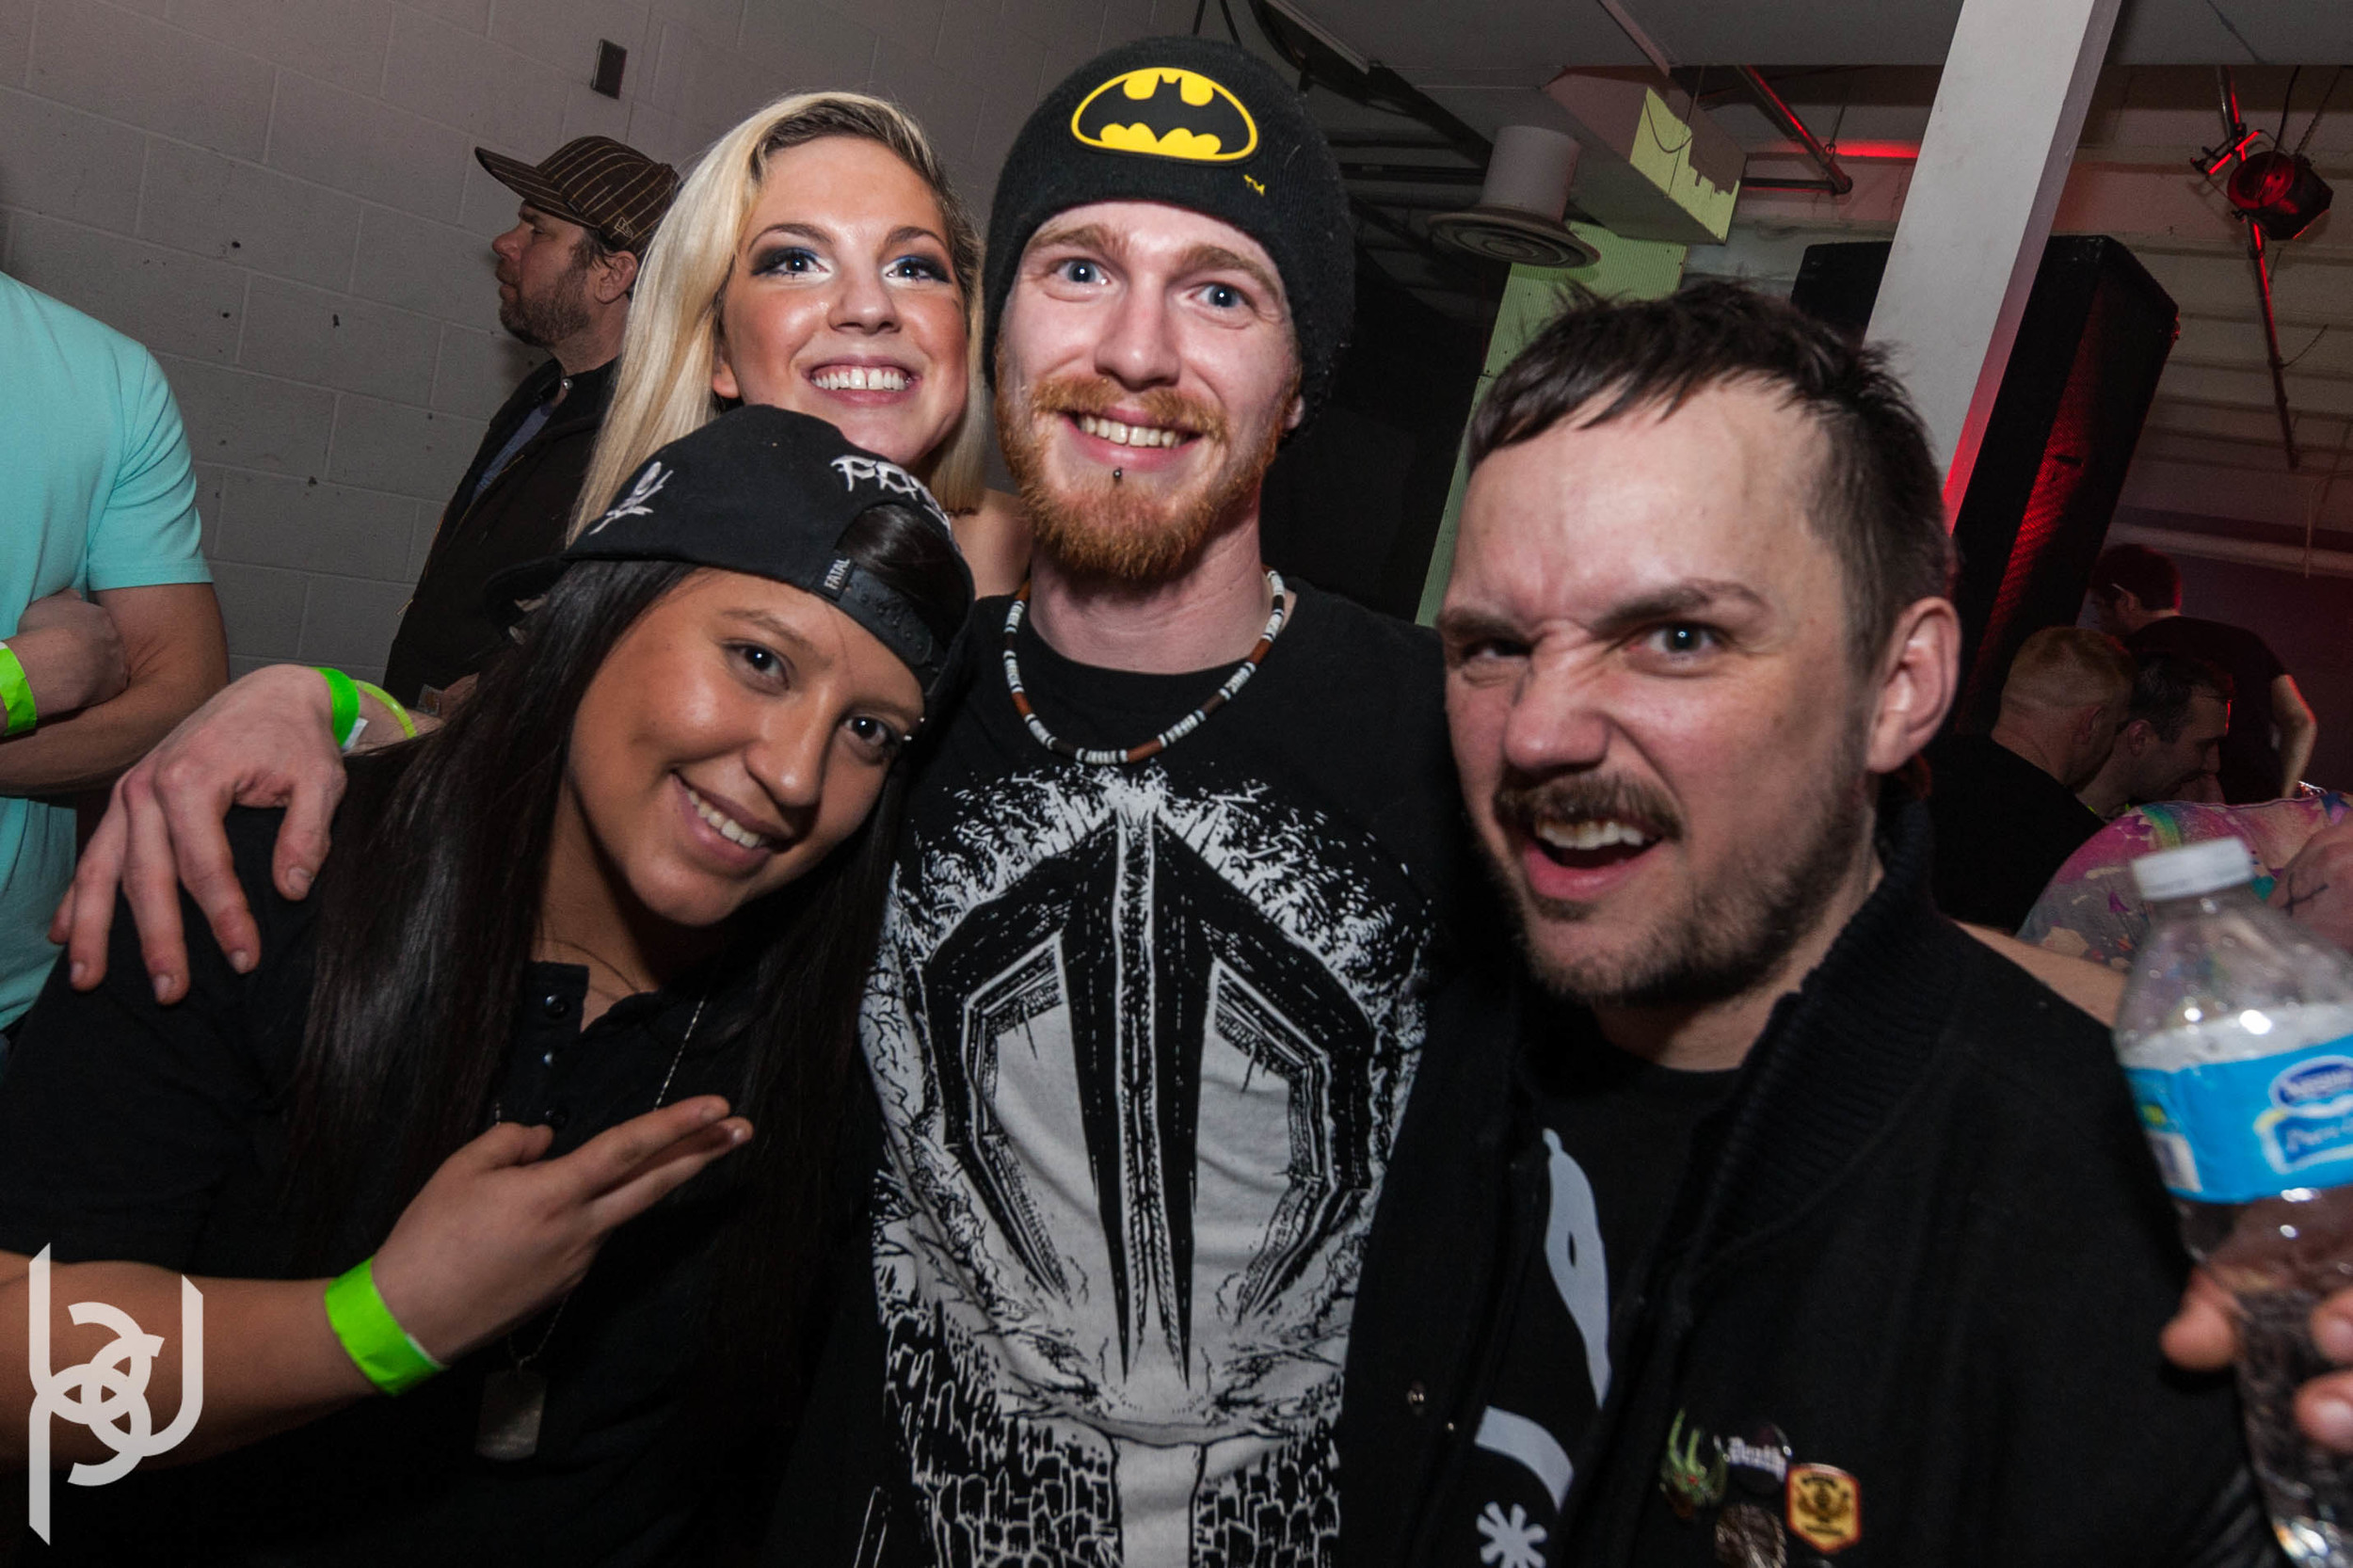 DOWNLINK, DIESELBOY, AJAPAI, MANTIS at The Loft 031414 BDP-81.jpg